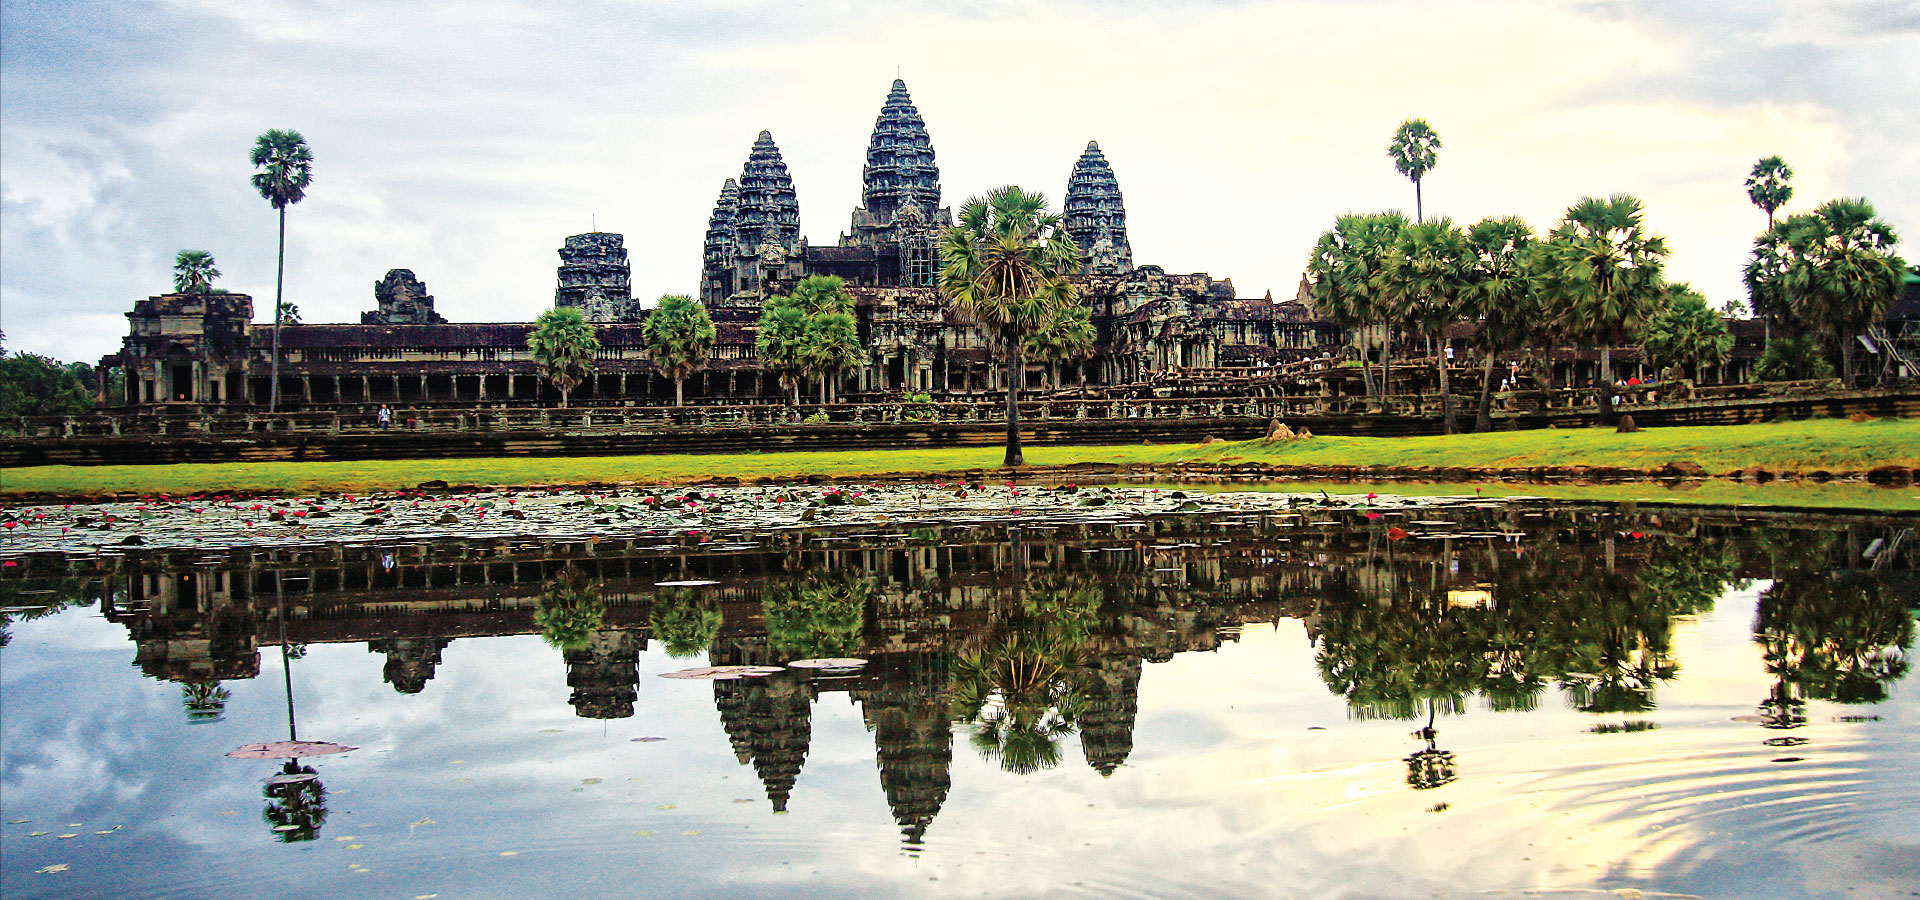 Visit the magnificent Angkor Wat, a heritage of humanity and world wonder